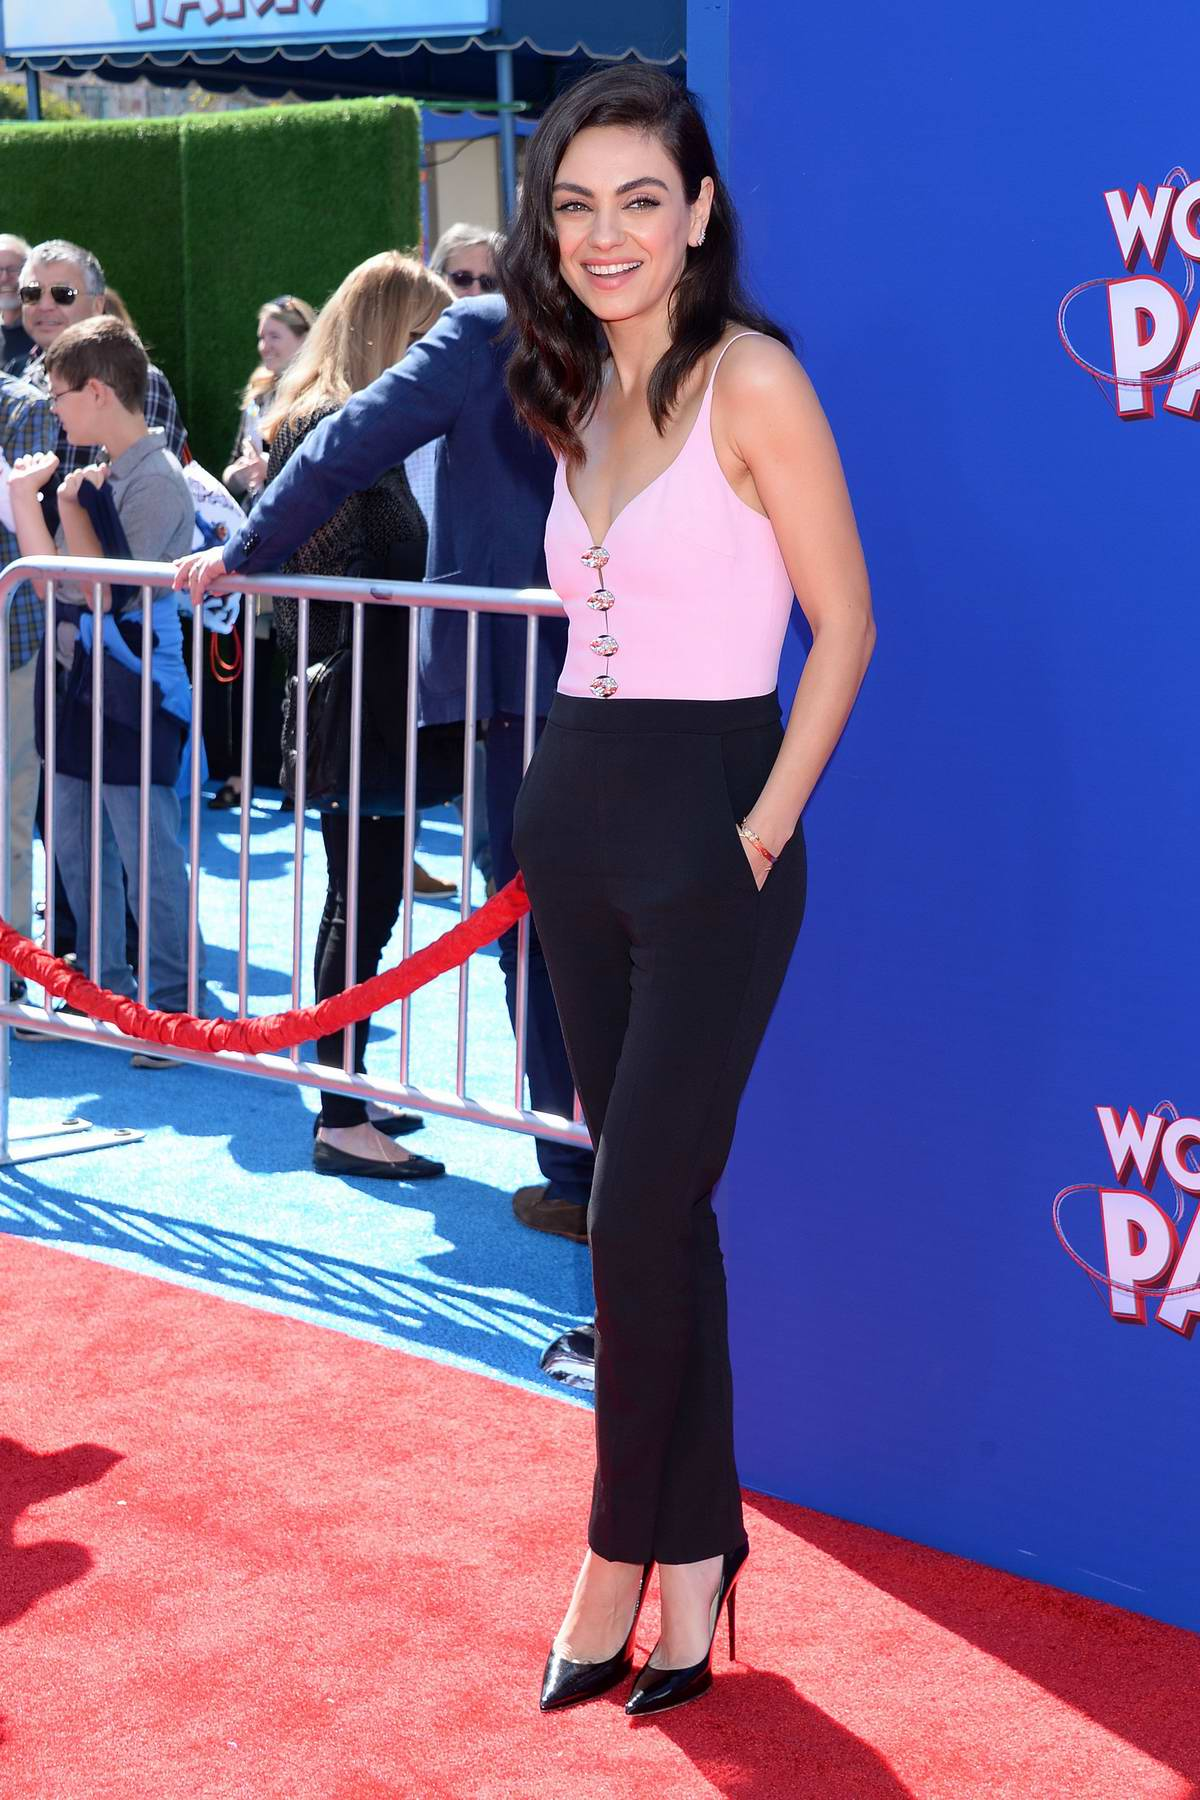 Mila Kunis attends 'Wonder Park' Premiere at the Regency Village Theatre in Westwood, Los Angeles